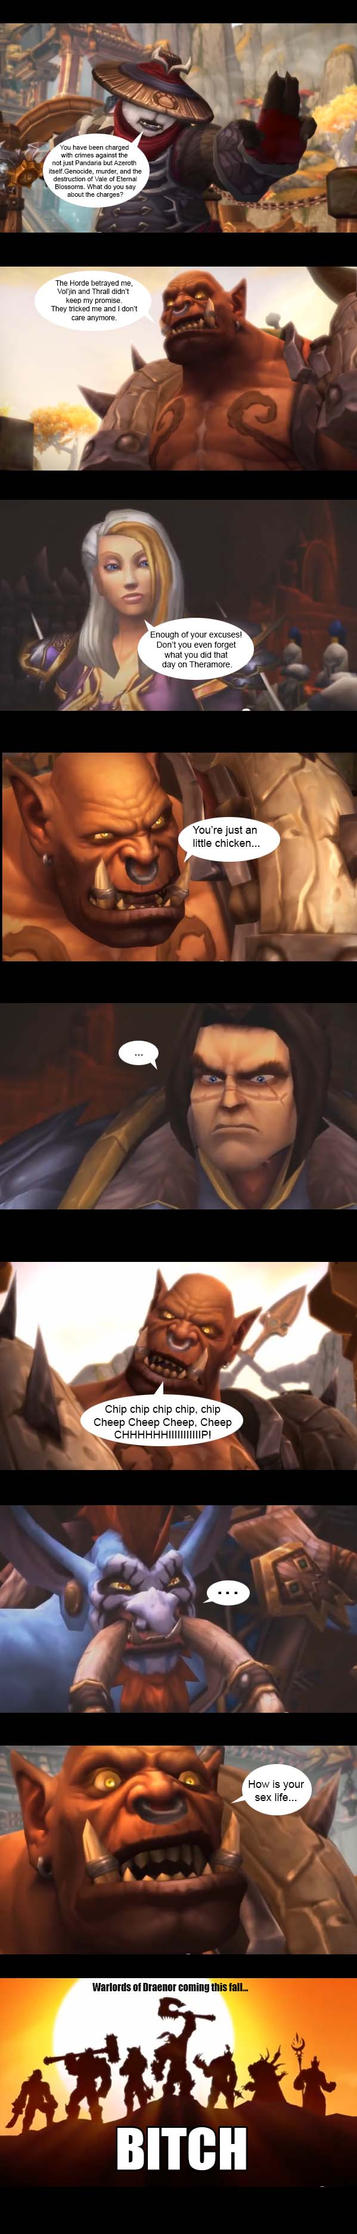 World of Warcraft Screencap Comic by alienhominid2000